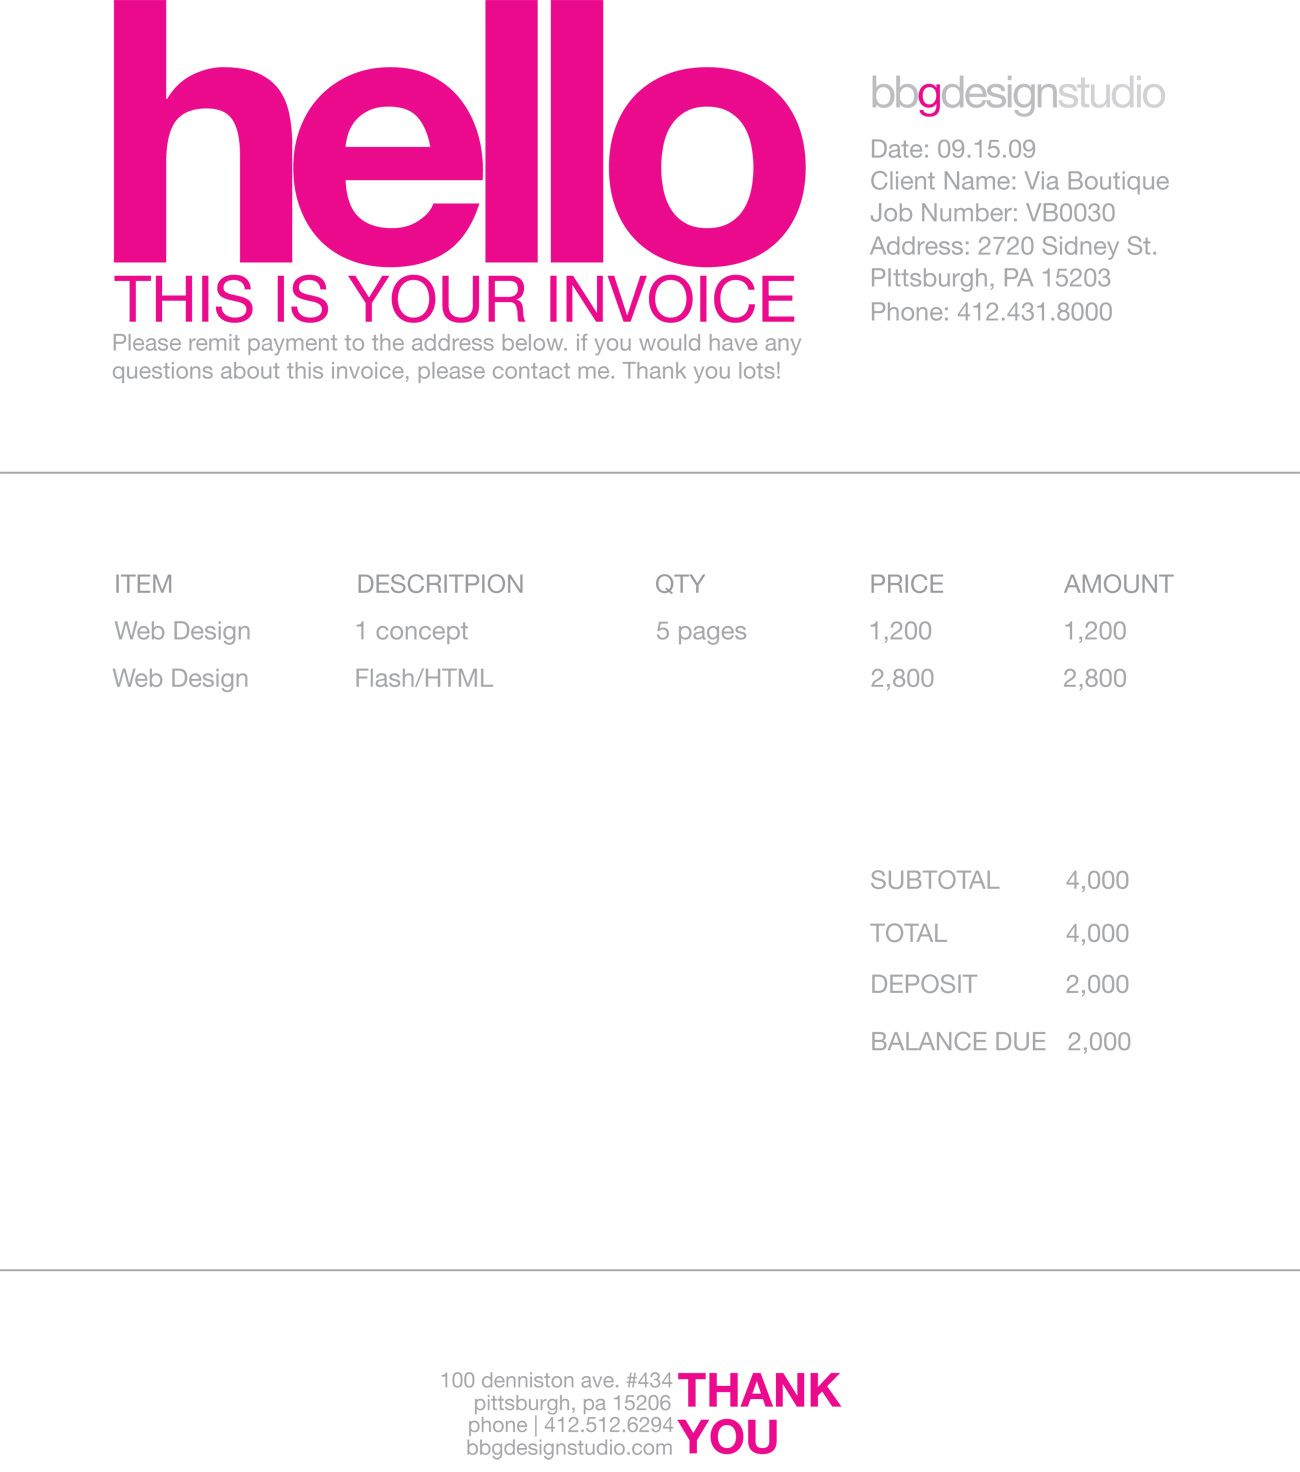 Picnictoimpeachus  Outstanding  Images About Invoice Design On Pinterest With Glamorous Design Invoice Besides Downloadable Invoice Template Furthermore Blank Invoice Templates With Enchanting Invoice Templates Free Also How To Create Invoice In Addition Standard Invoice And Office Invoice Template As Well As Invoice Sheet Additionally Invoice Scanner From Pinterestcom With Picnictoimpeachus  Glamorous  Images About Invoice Design On Pinterest With Enchanting Design Invoice Besides Downloadable Invoice Template Furthermore Blank Invoice Templates And Outstanding Invoice Templates Free Also How To Create Invoice In Addition Standard Invoice From Pinterestcom